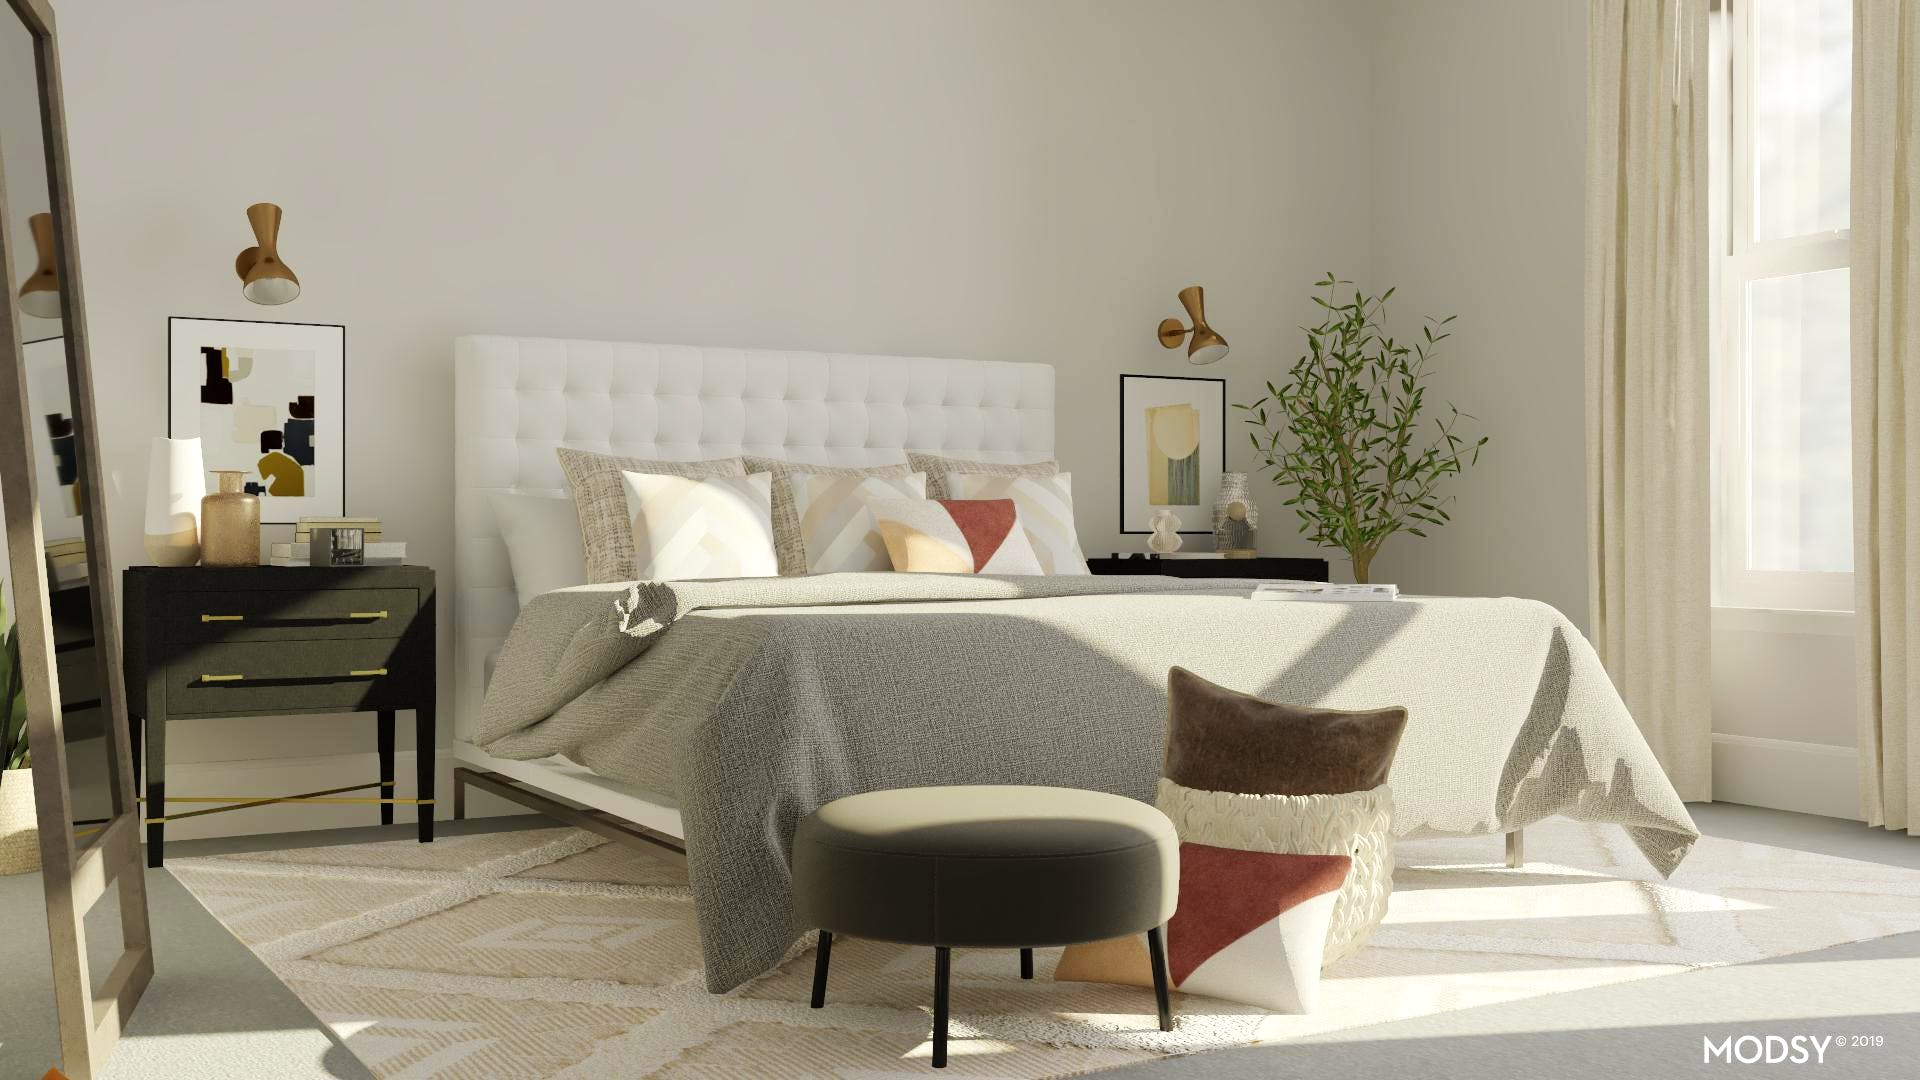 Using Tones And Textures To Enhance Your Bedroom